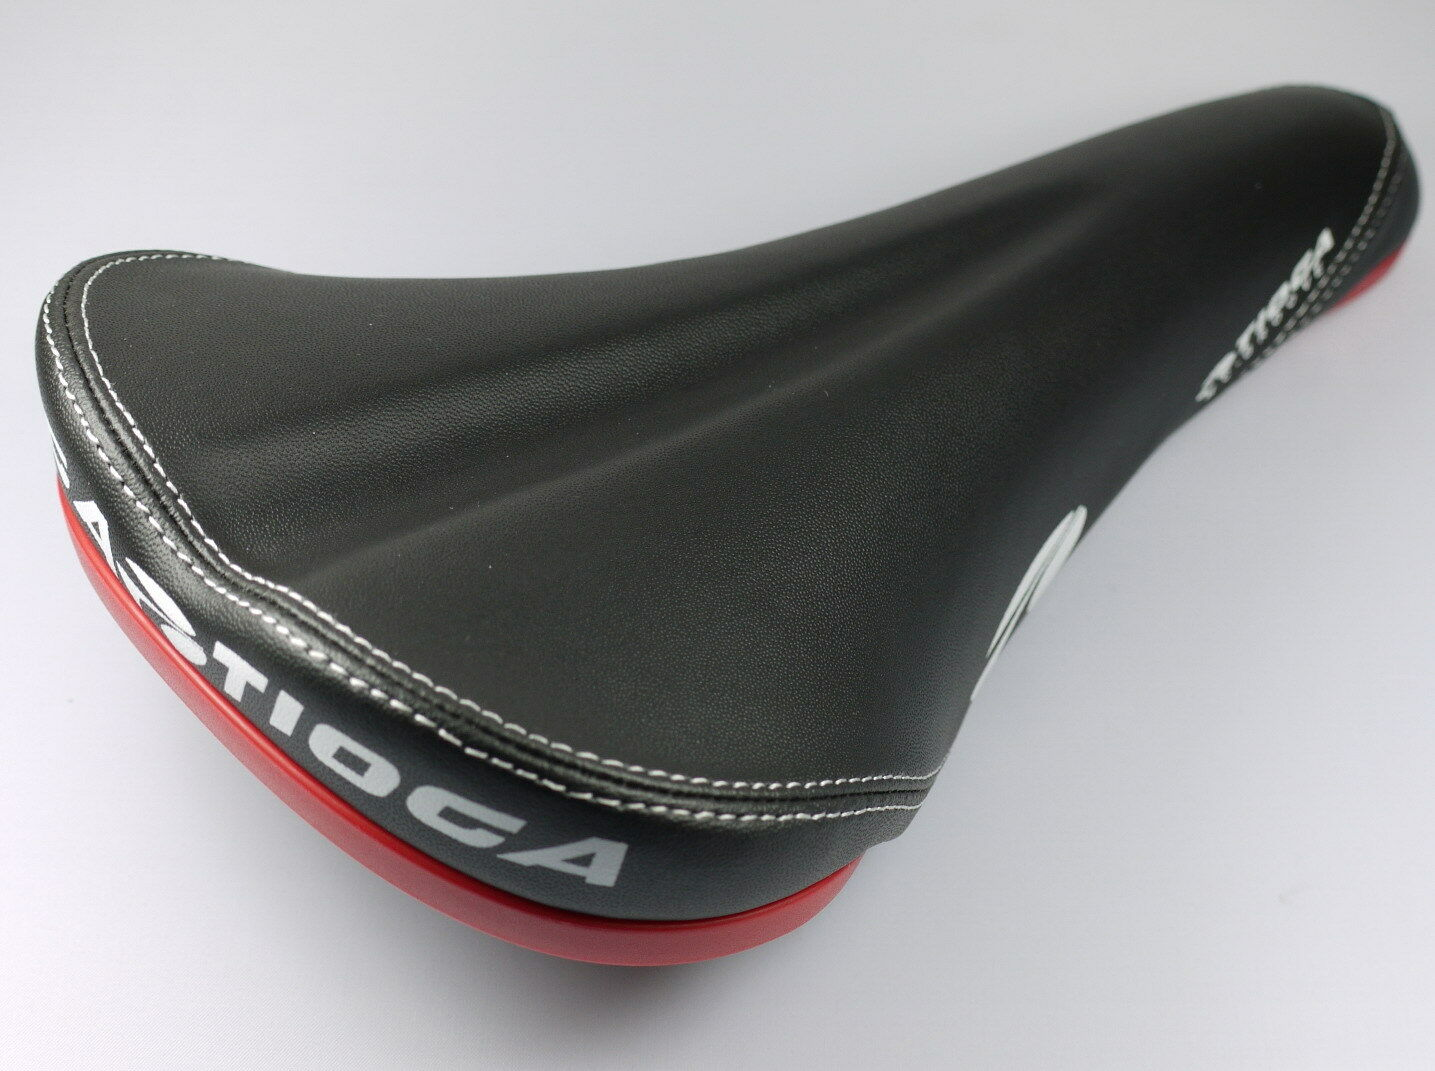 TIOGA MC GROOVE MTB OFFROAD DH FREERIDE BICYCLE SEAT SADDLE BLACK MIX RED